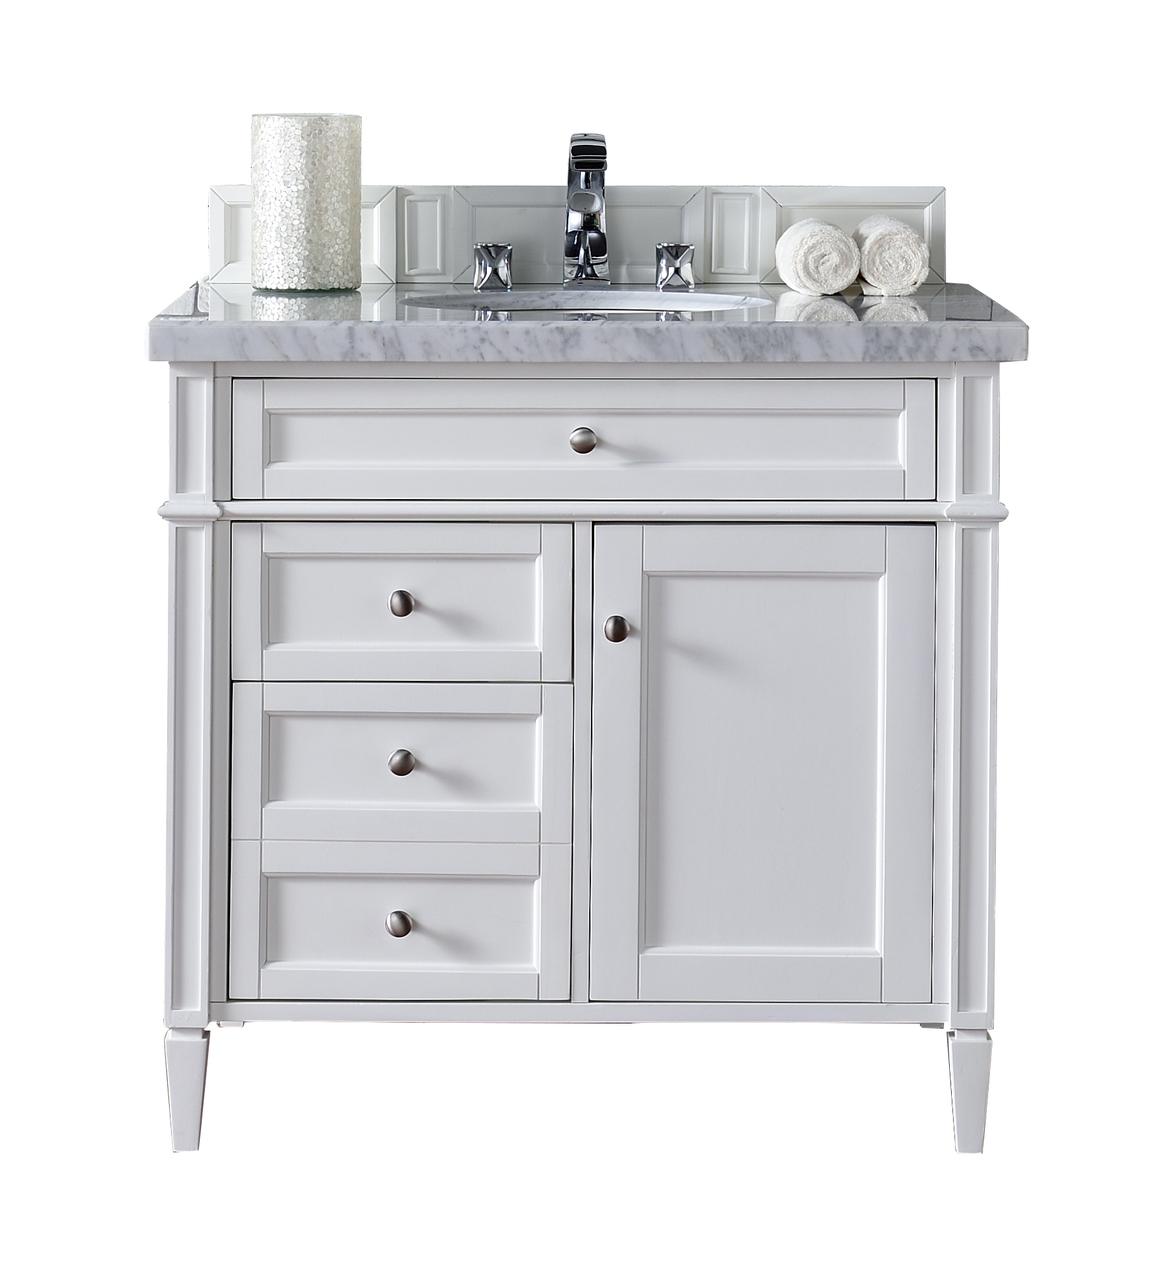 James martin brittany collection 36 single vanity cottage white White bathroom vanity cabinets